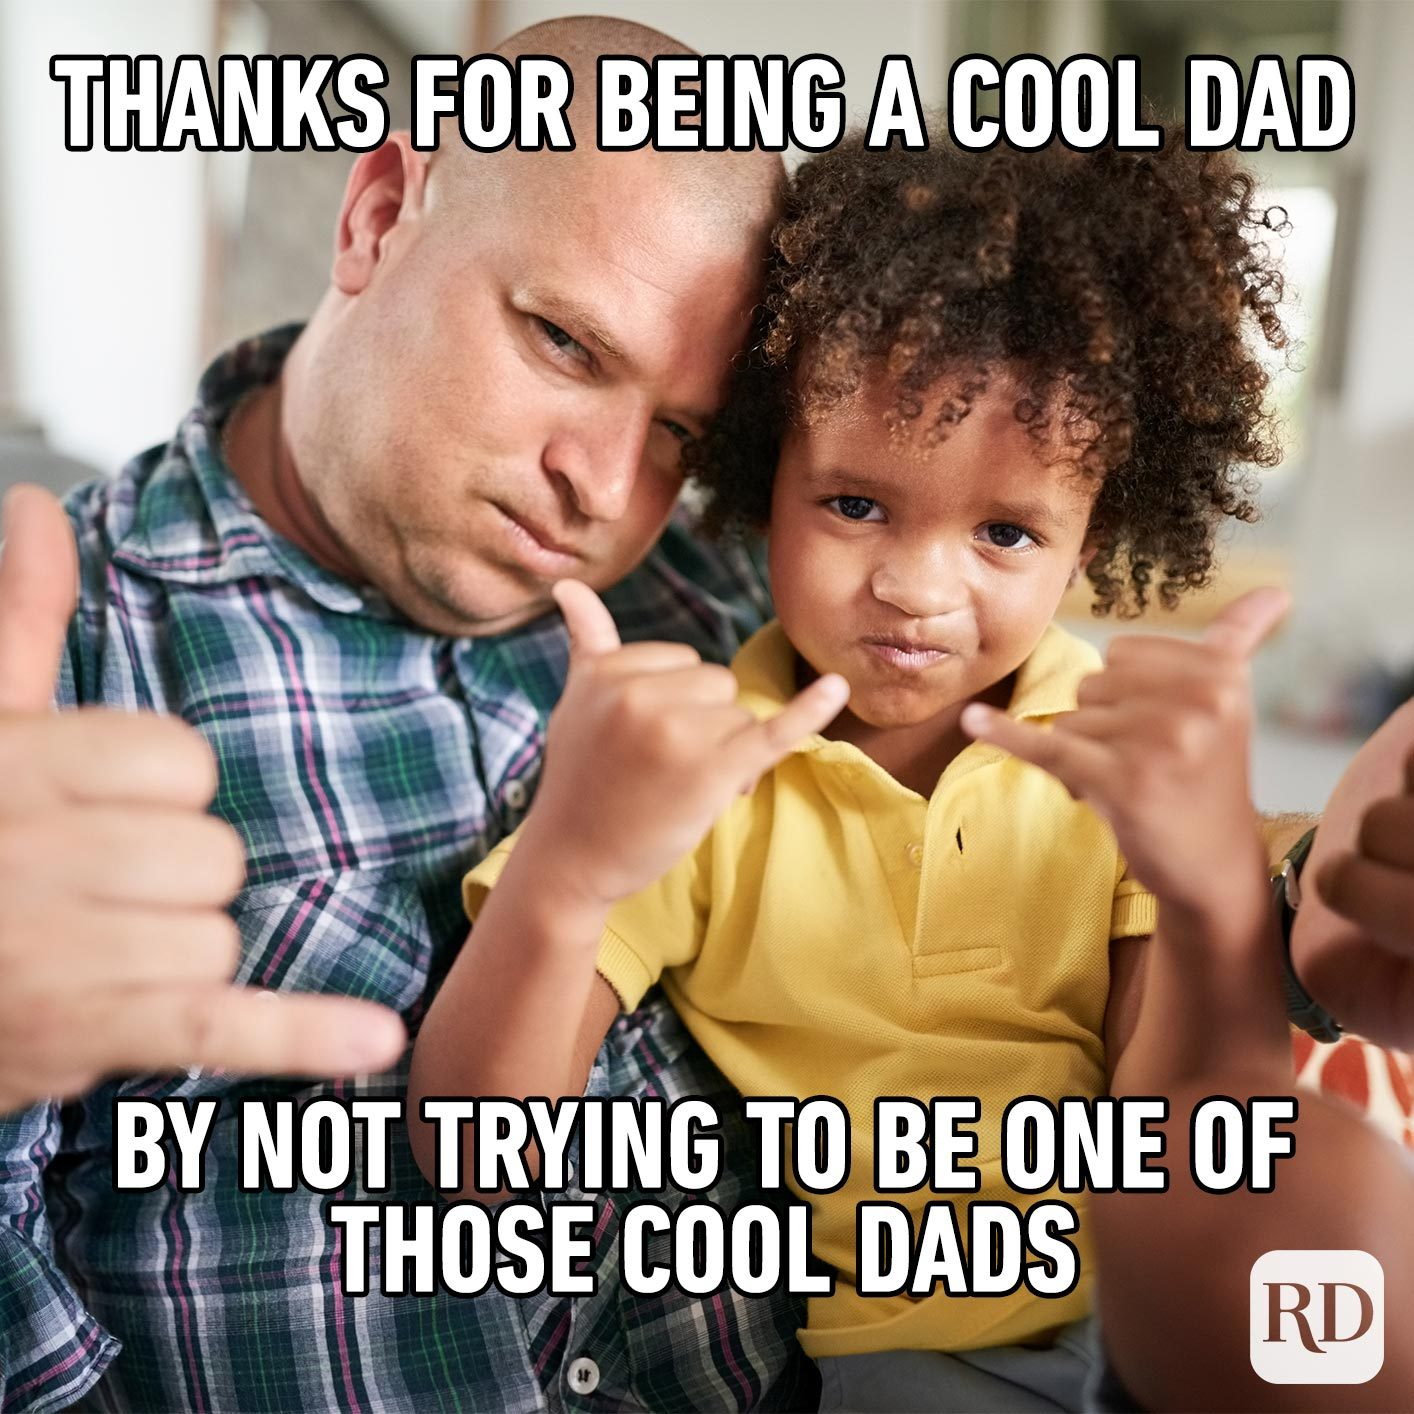 Child and father making the same hand signs. Meme text: Thanks for being a cool dad by not trying to be one of those cool dads